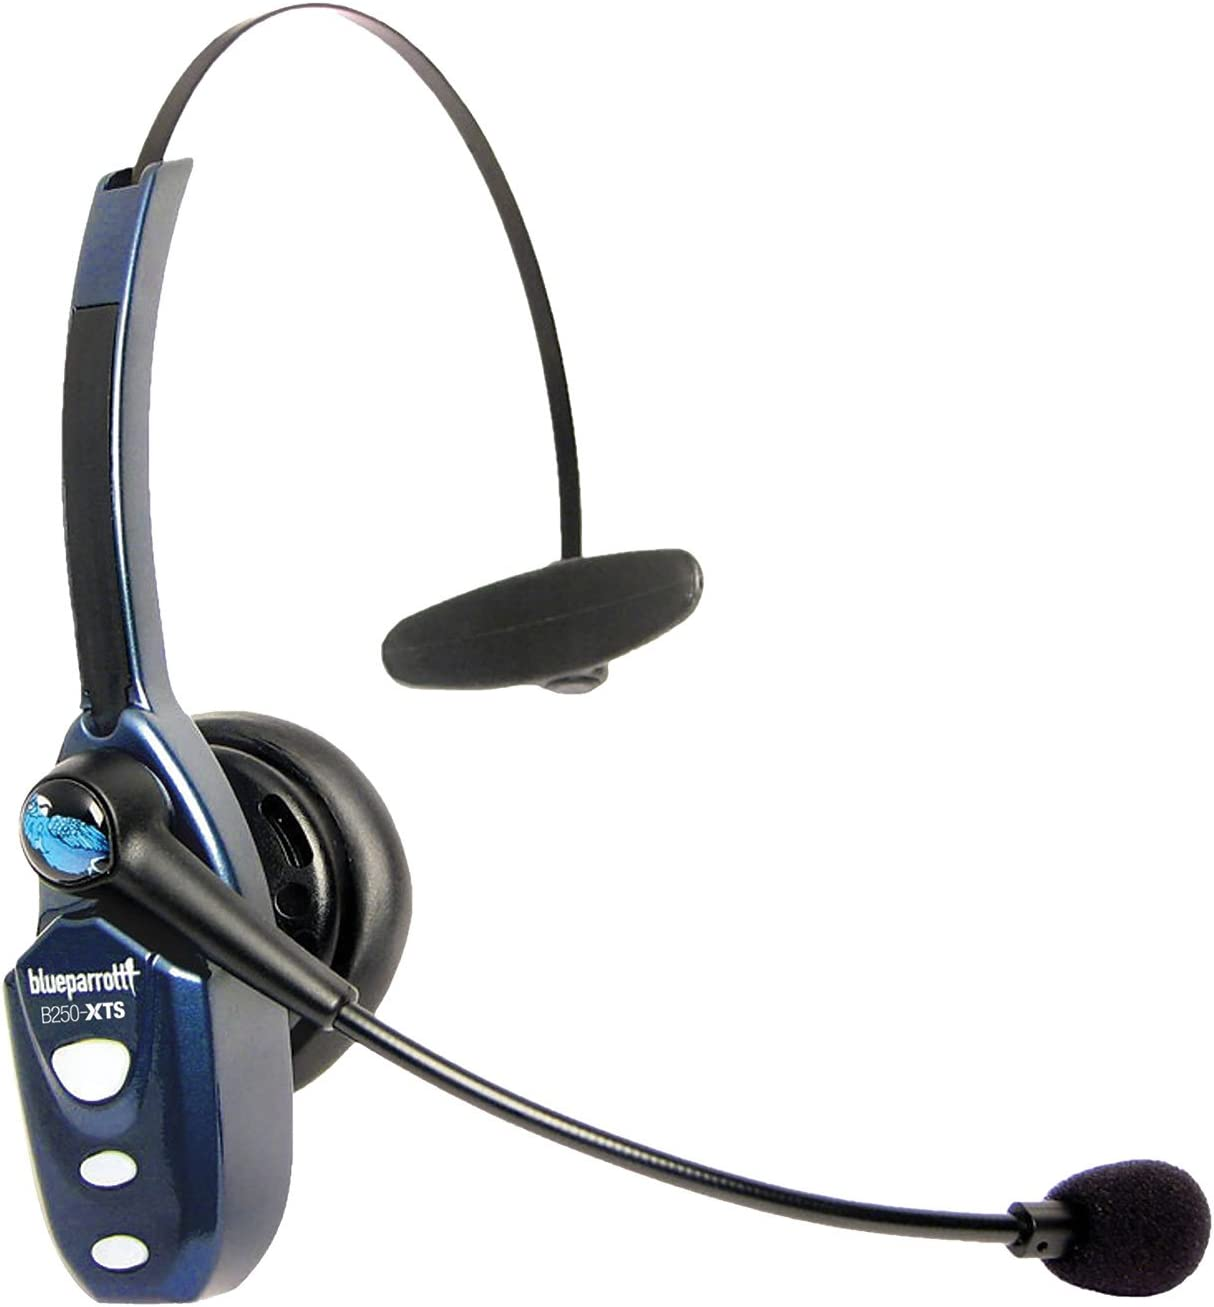 BlueParrott Bluetooth Headphone For Drivers look this headphone this is the best headphones for the truck and car drivers if you are using this Bluetooth headphones this is best for you